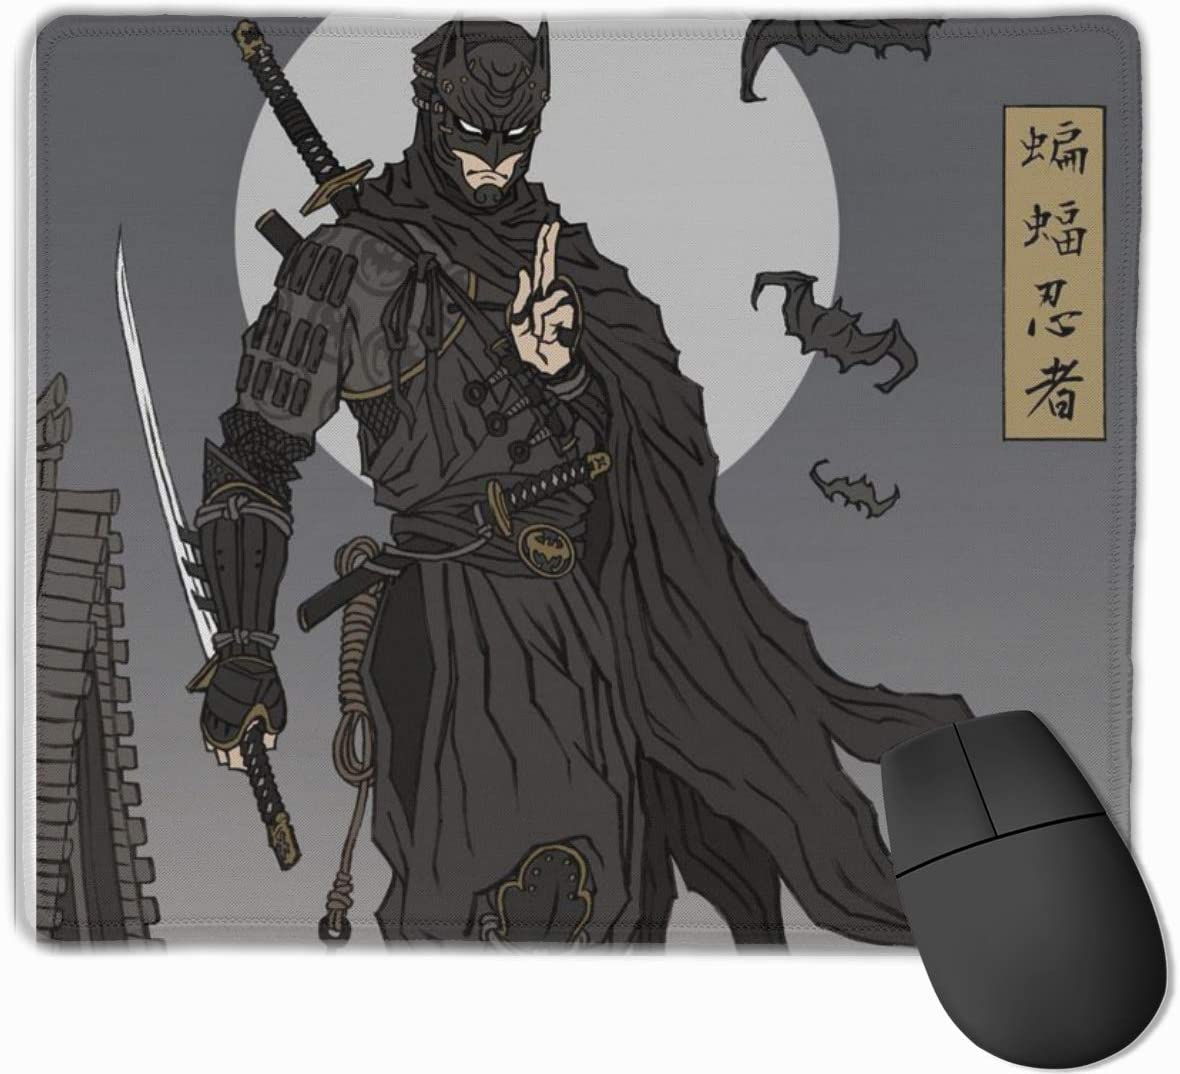 Ninja Extended Gaming Mouse Pad with Non-Slip Rubber Base with Stitched Edges,Office Home Gaming Mouse Mat for Laptops,Computers,PCs,Desktops,9.8 X11.8Inch